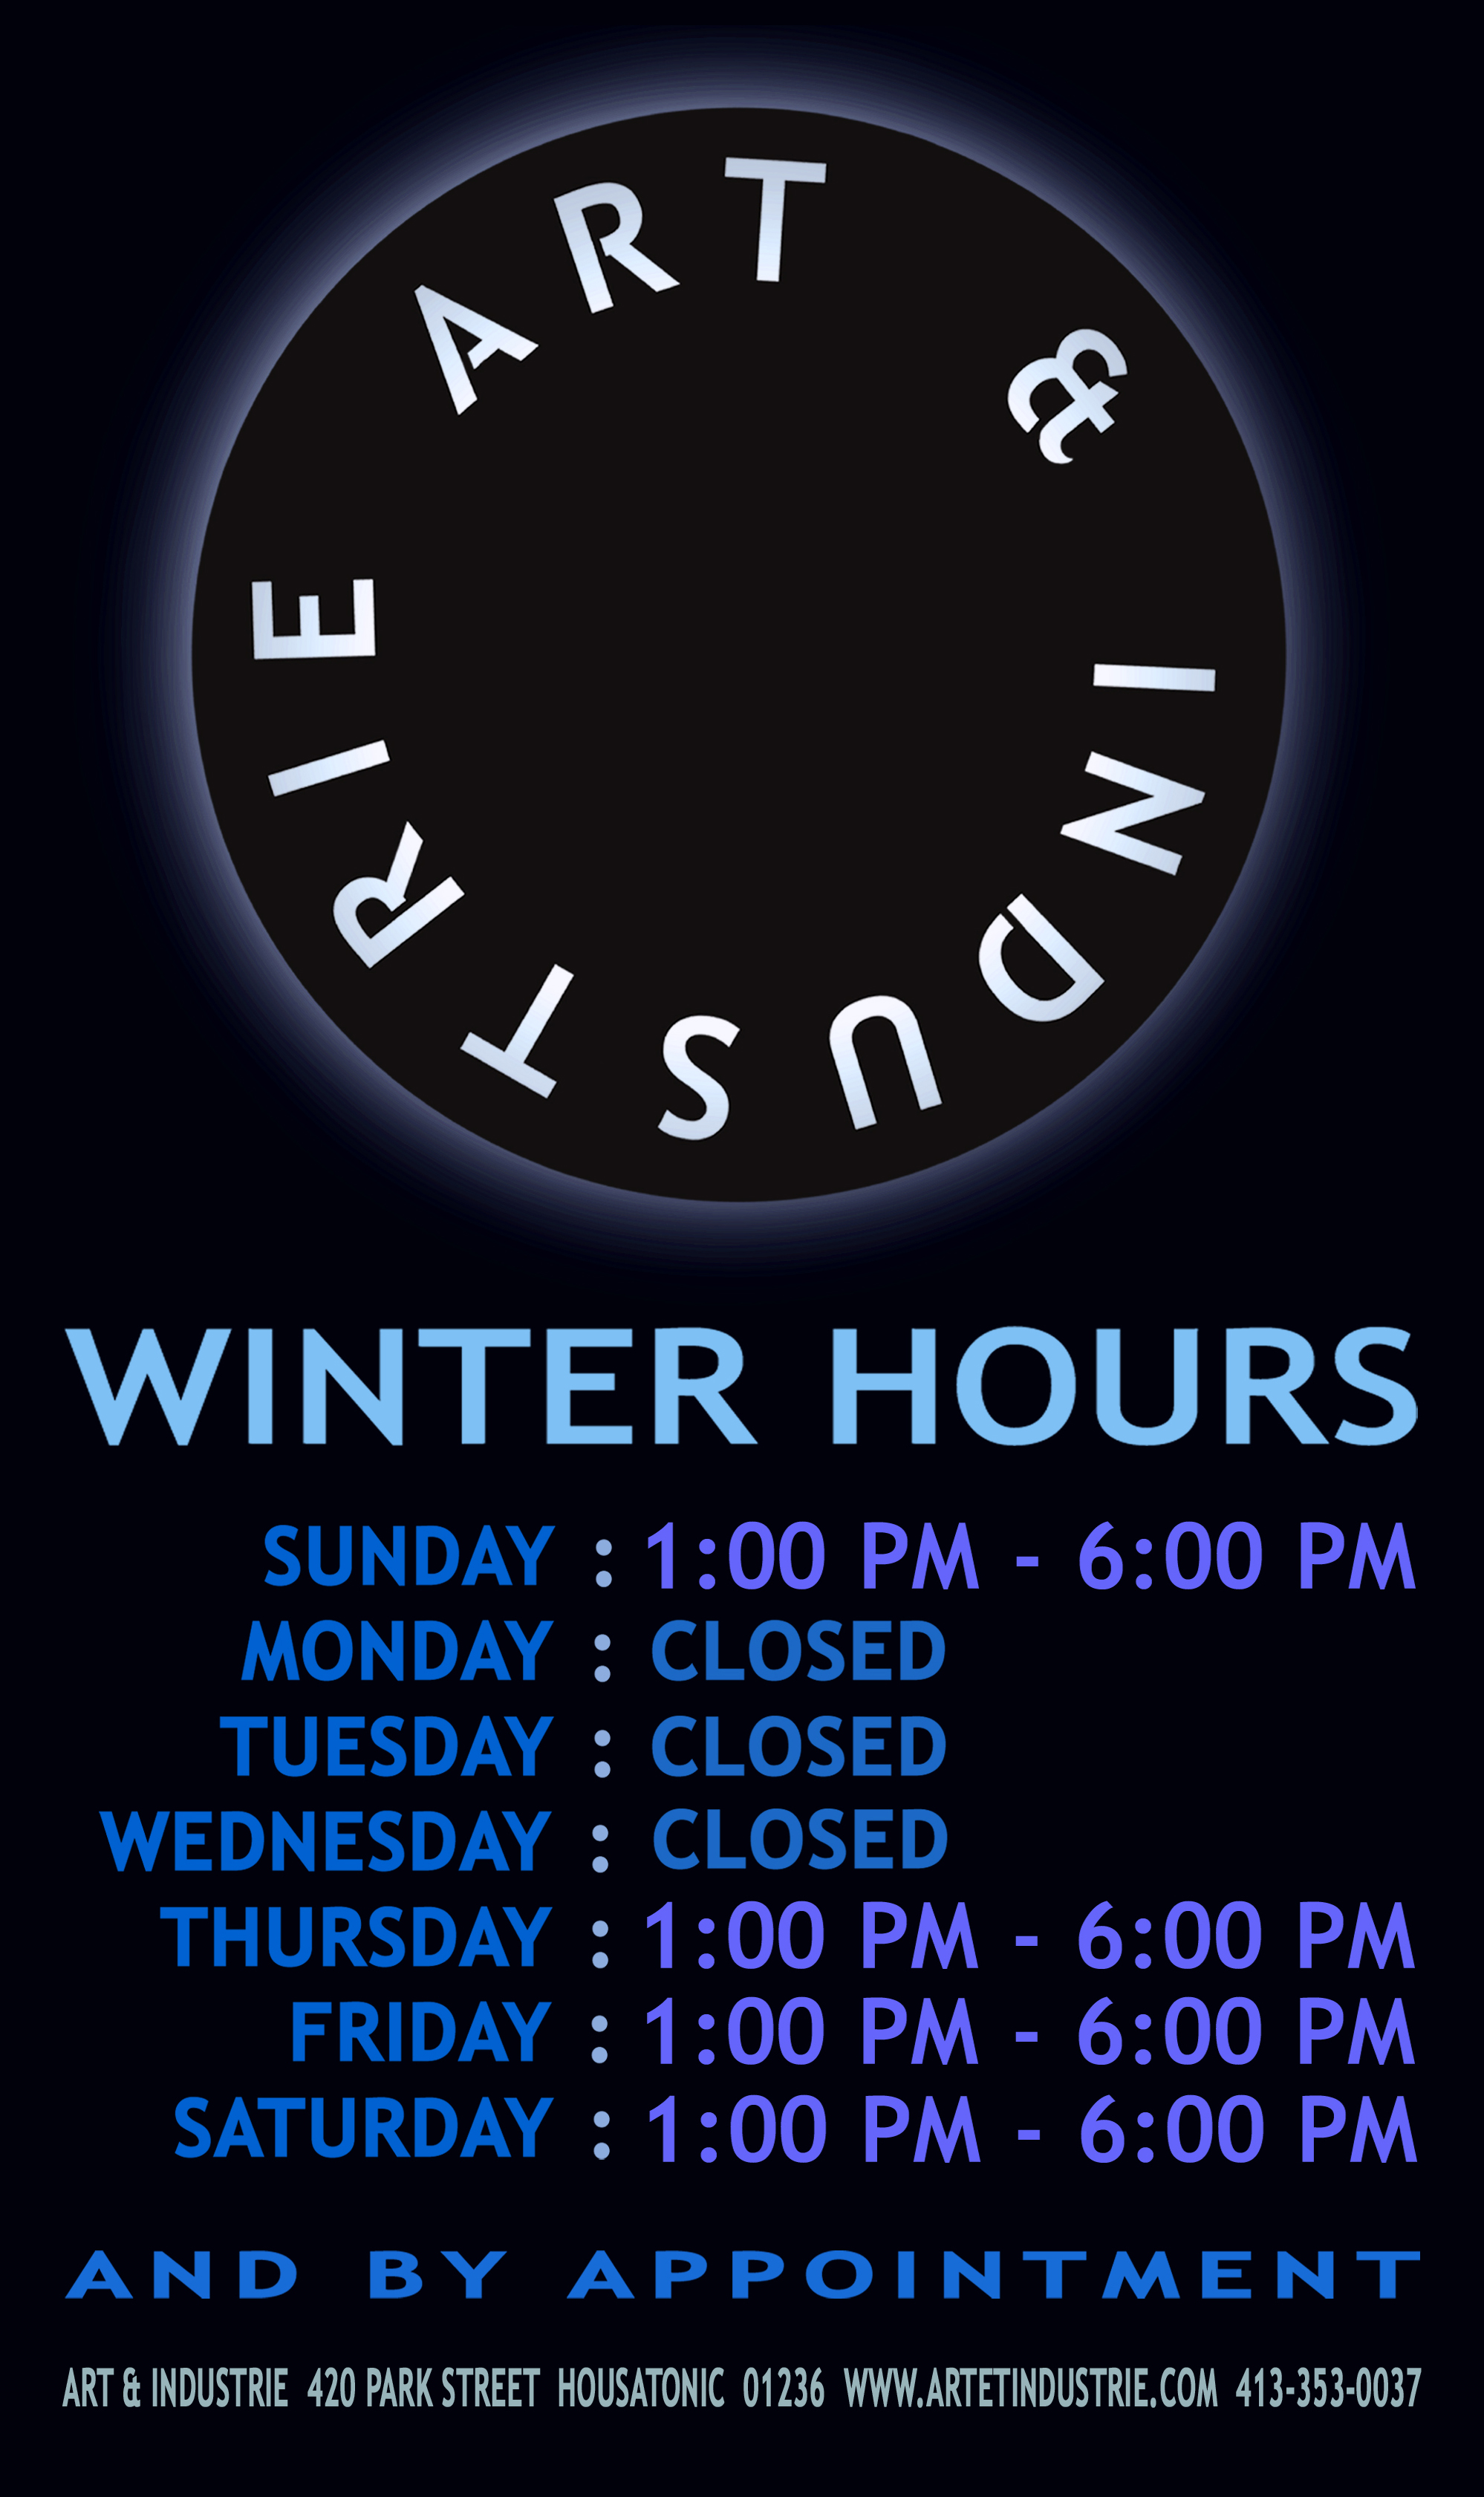 HOURS SIGN WINTER